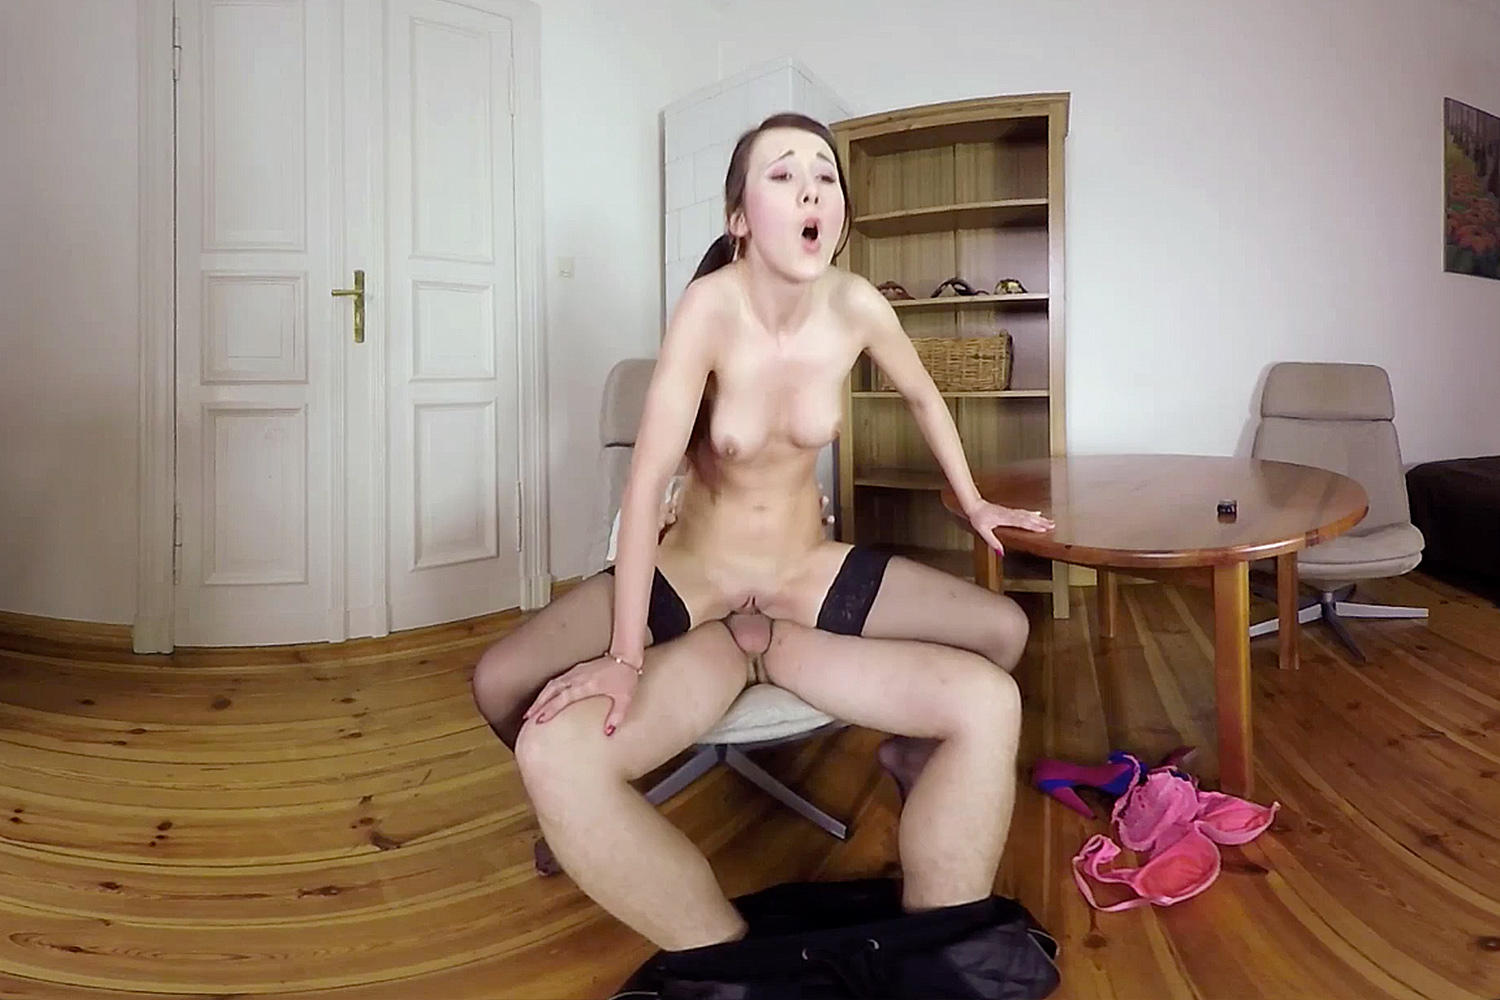 Looking for Your Cock VR Porn Video